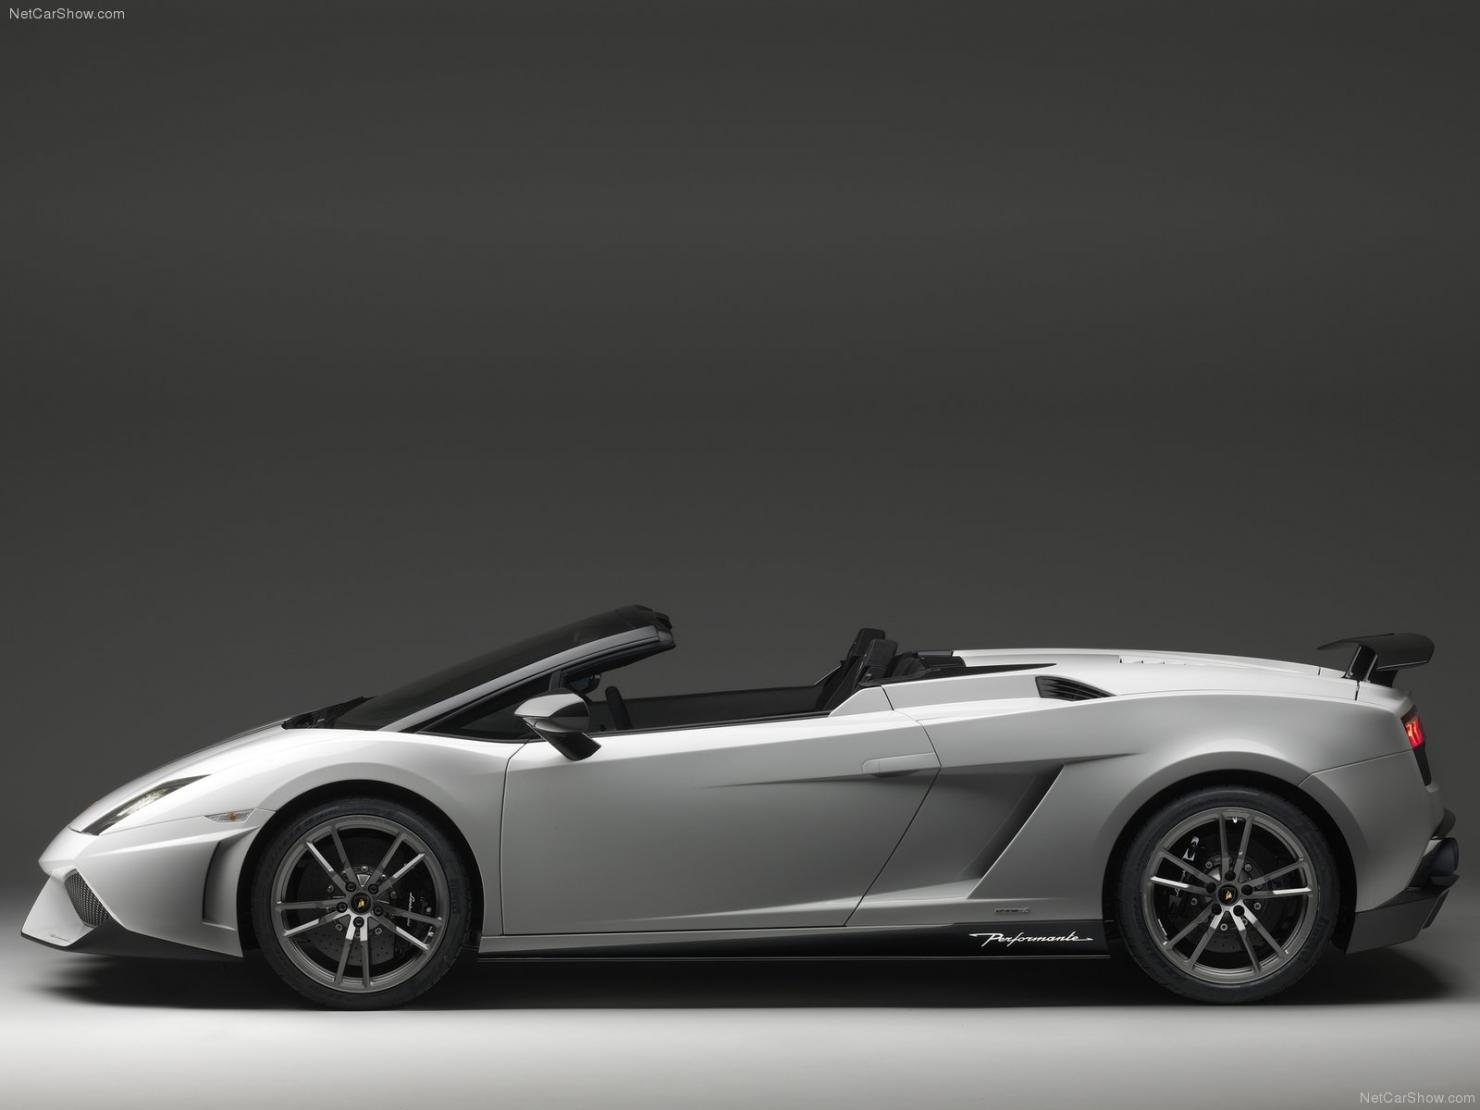 lamborghini-gallardo_lp570-4_spyder_performante_2011_1600x1200_wallpaper_02.jpg